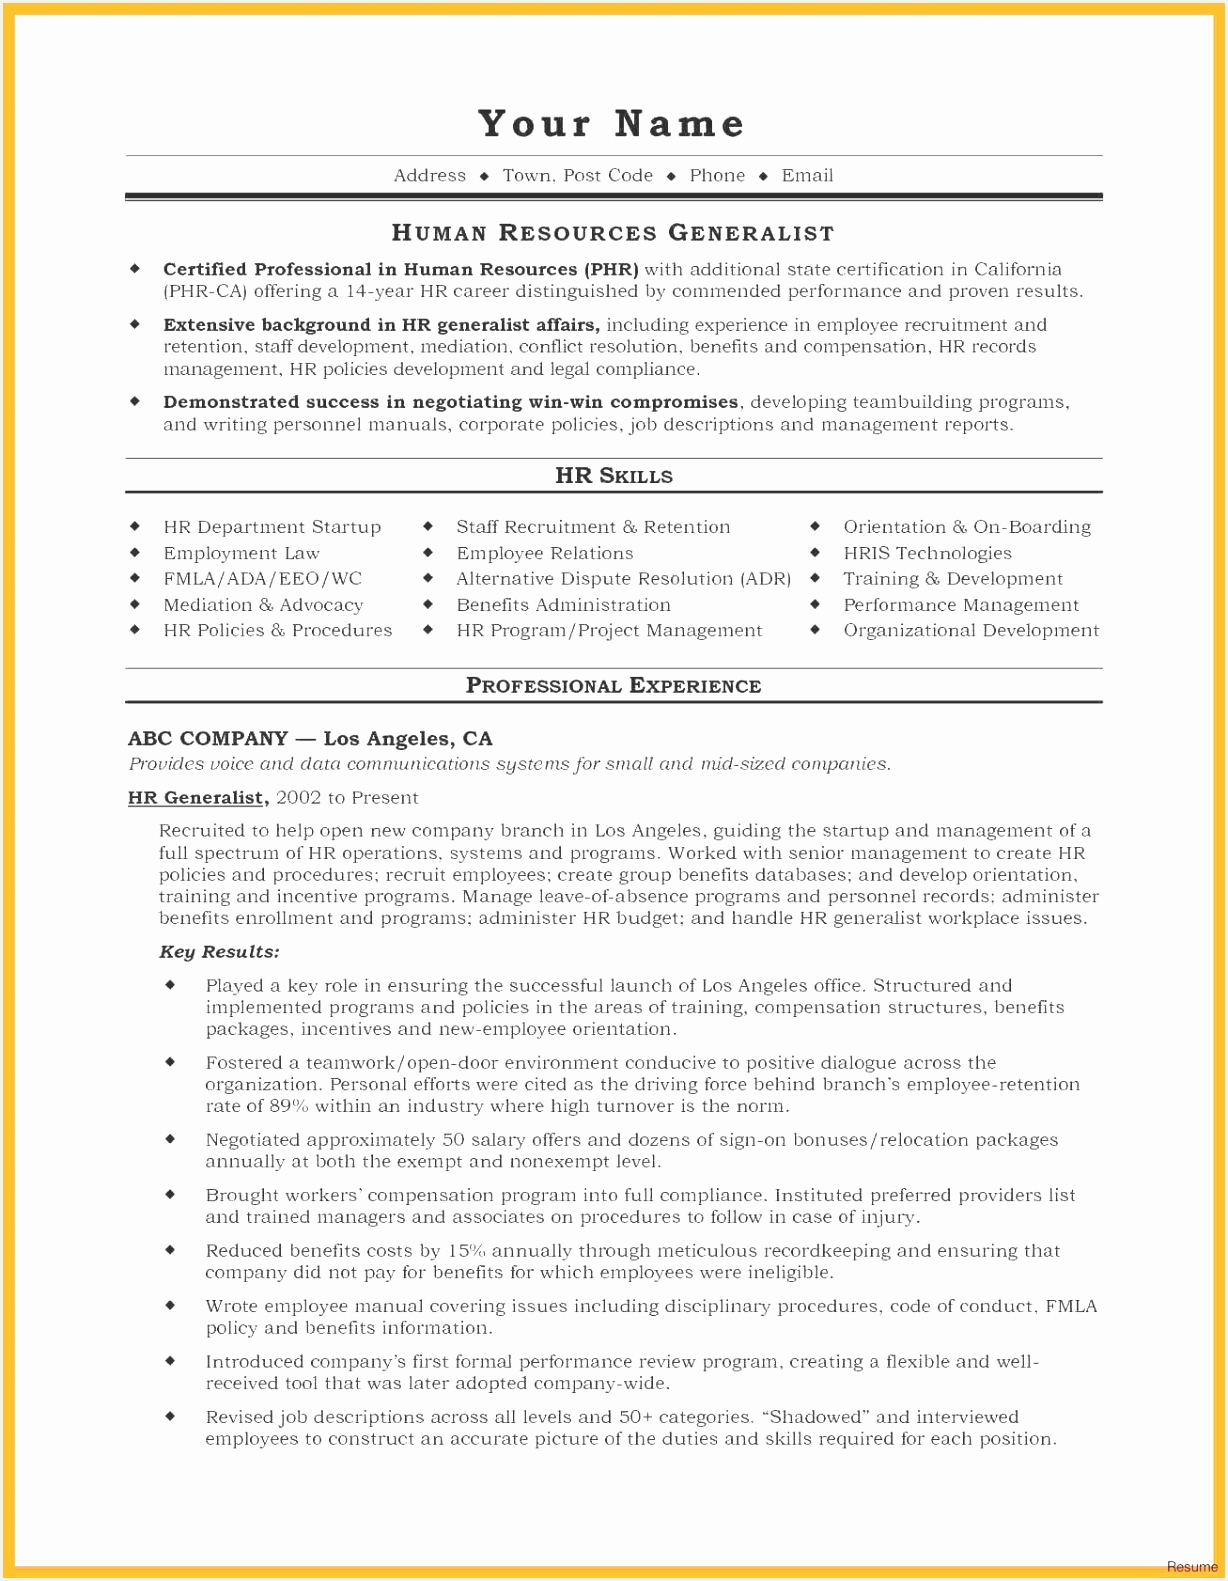 Resume Outline Free Sseah Luxury Case Manager Resume Sample Free Residential Property Manager Resume Of 4 Resume Outline Free